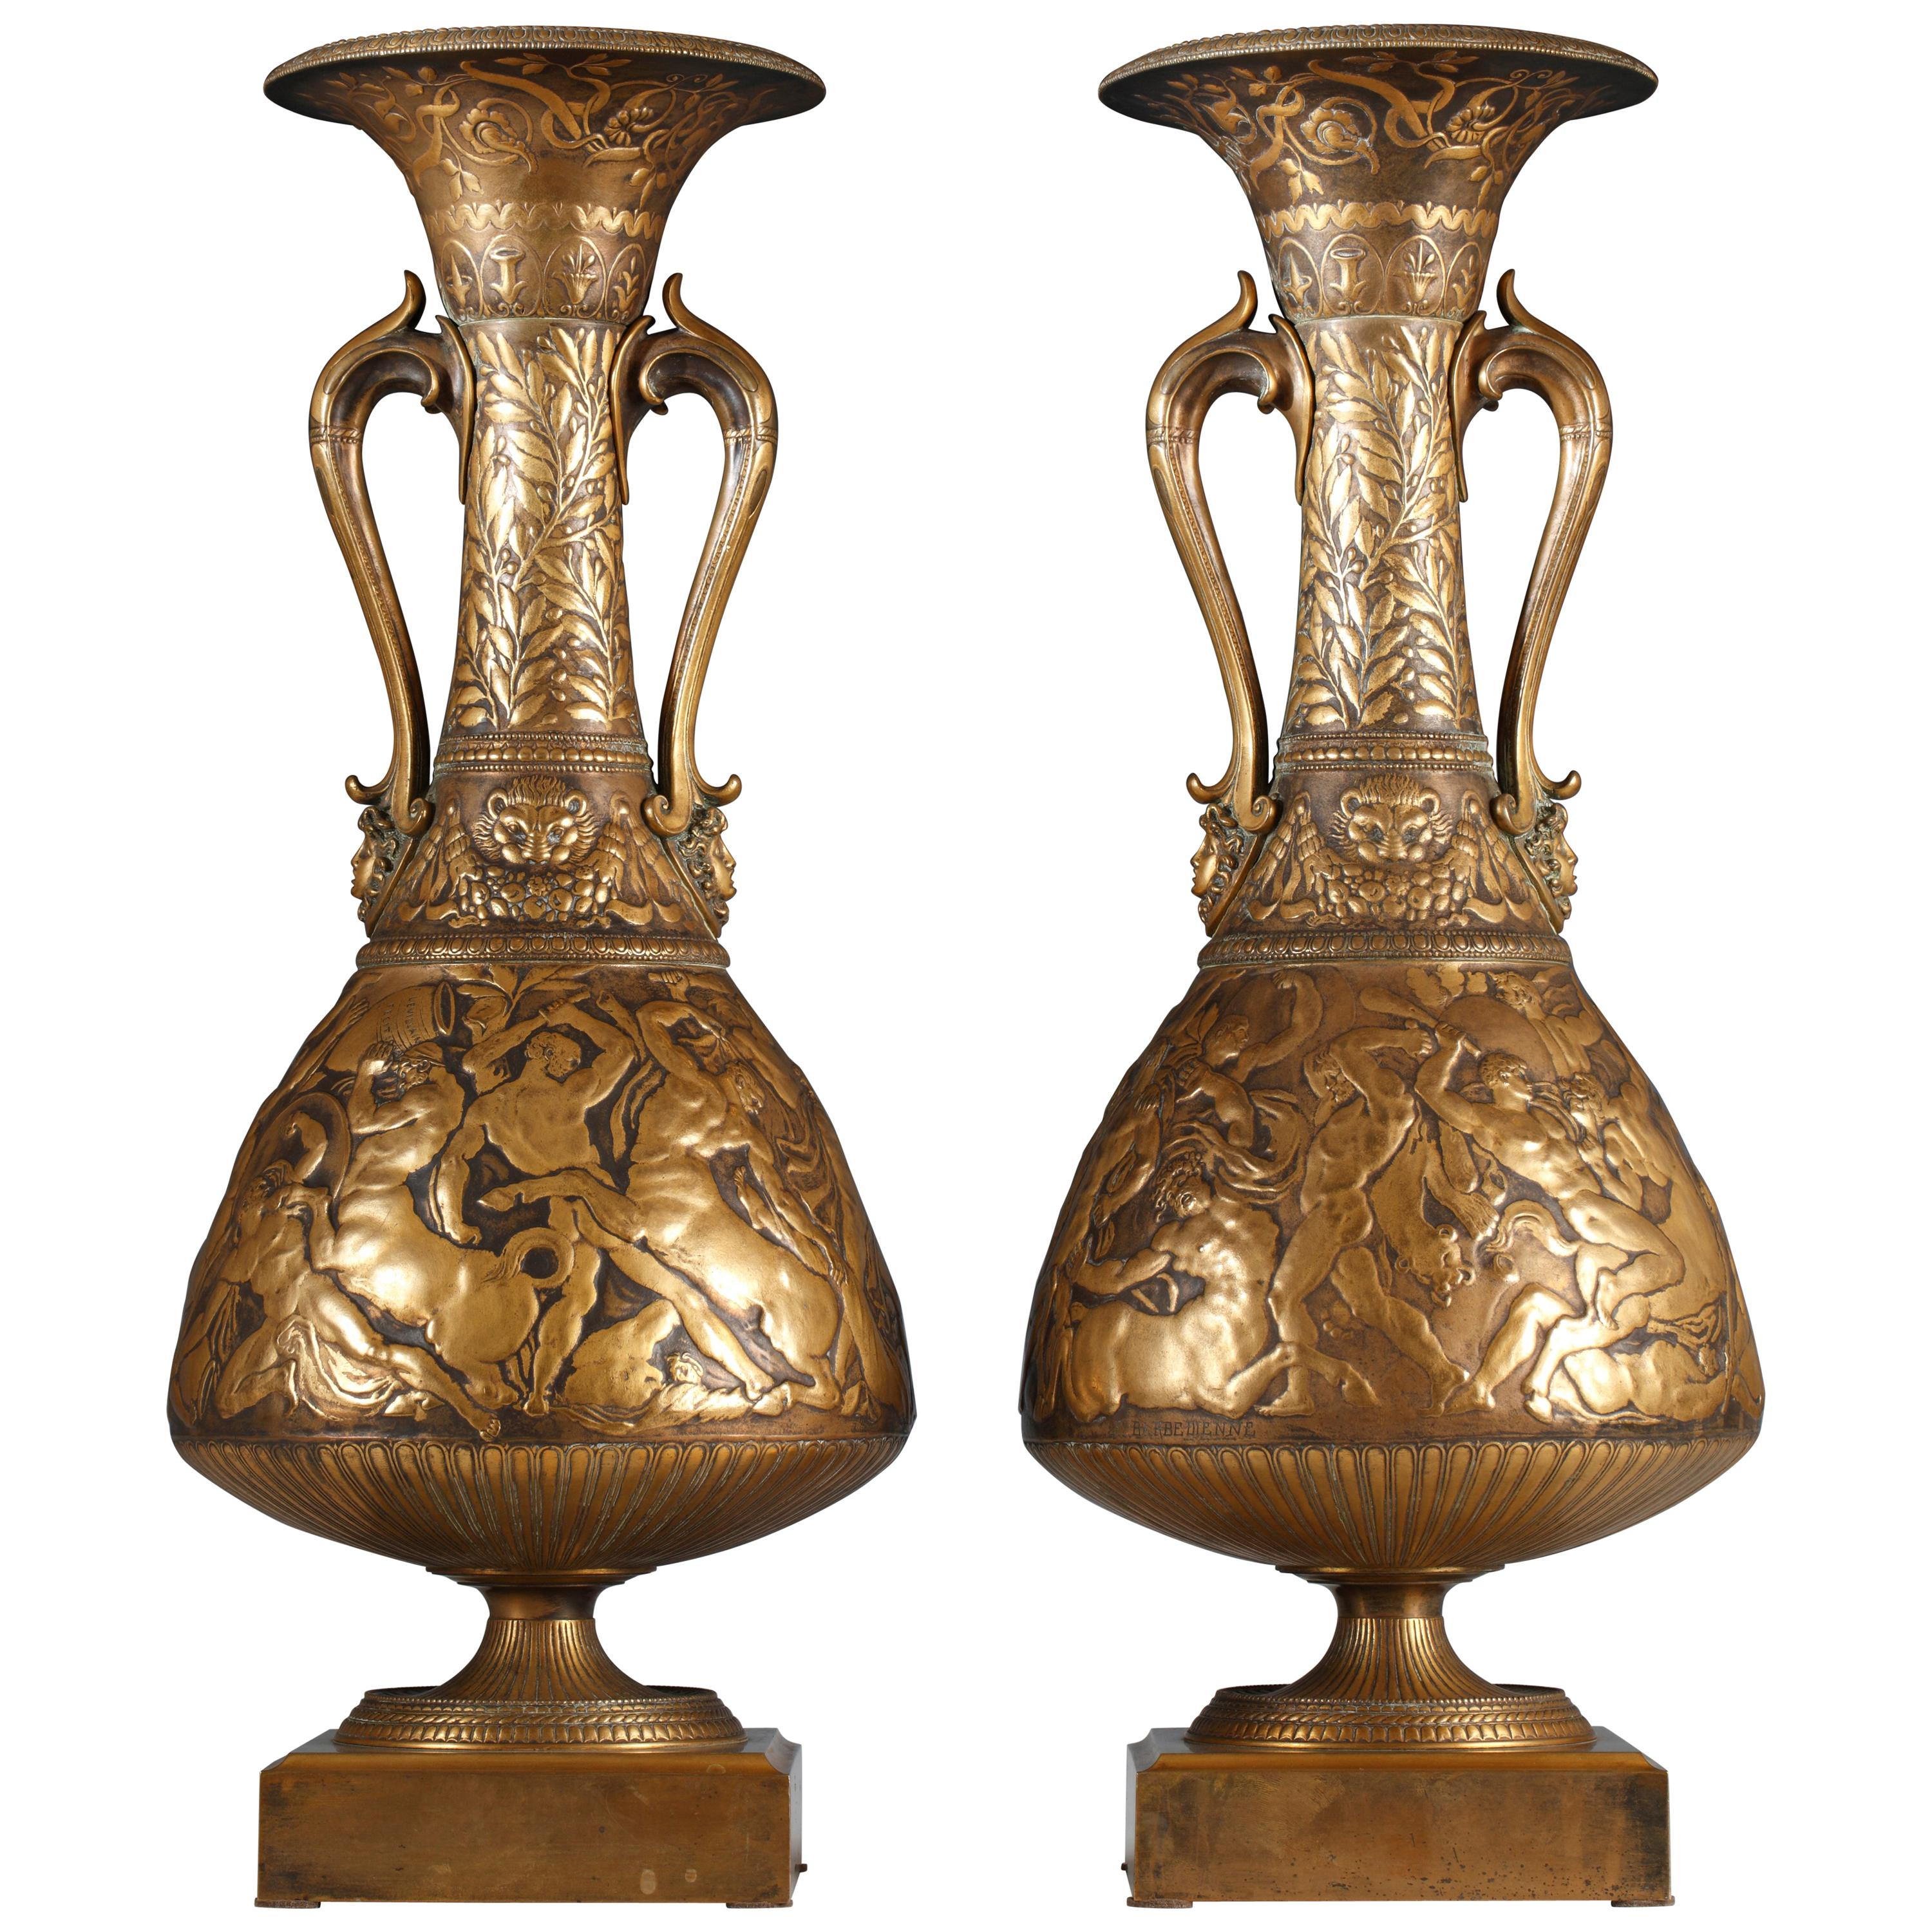 Pair of Neo-Greek Amphoras Vases by F. Levillain and F. Barbedienne